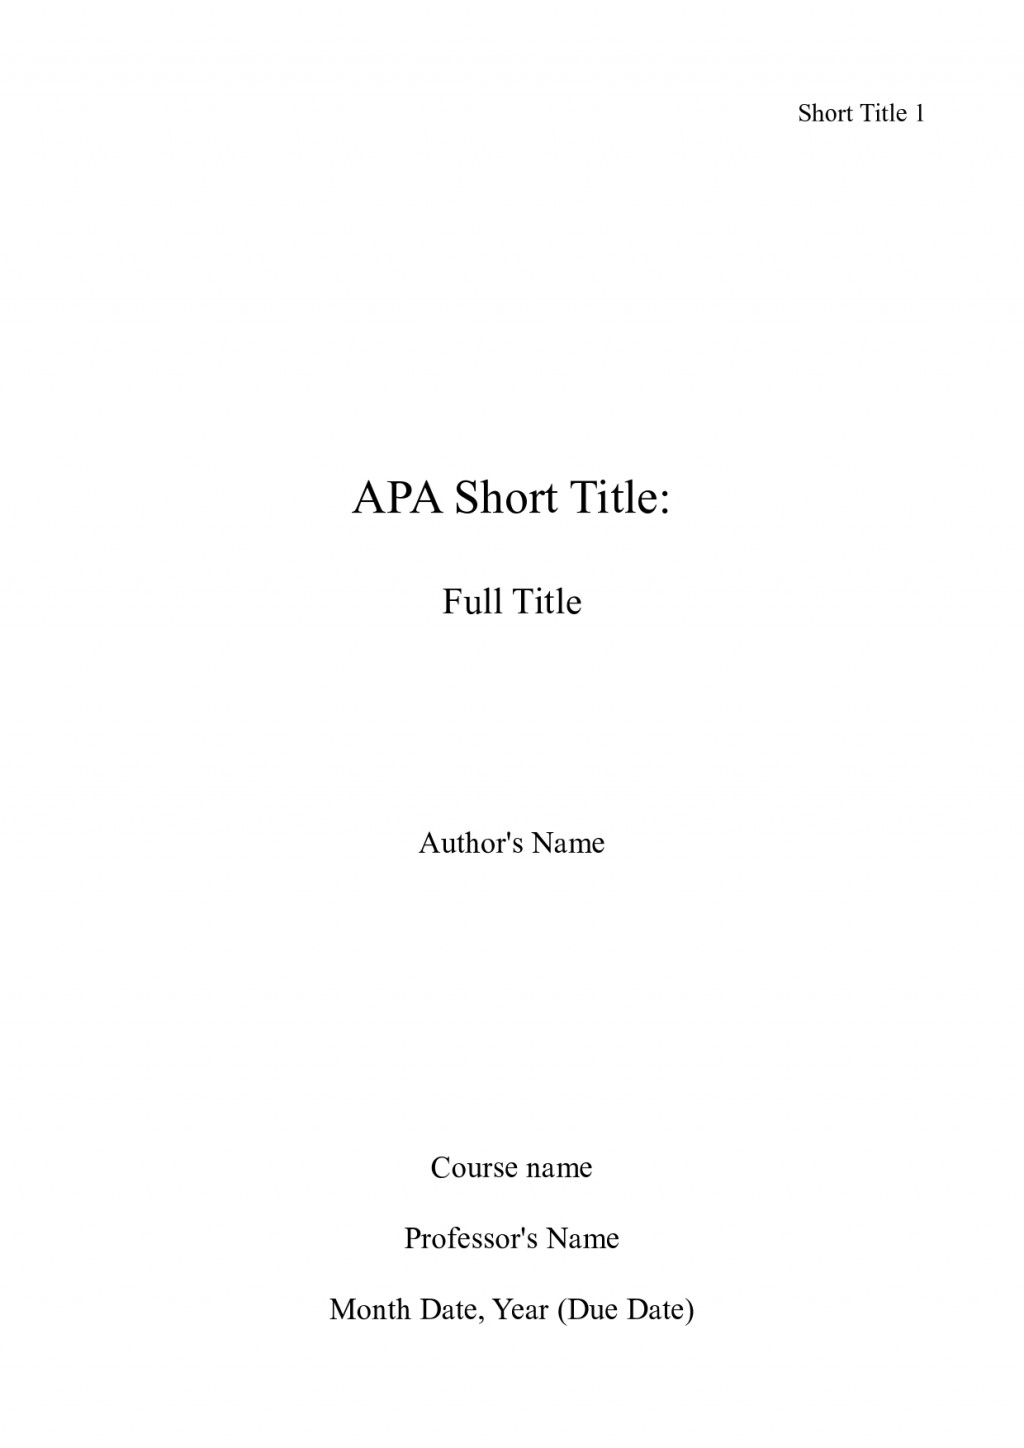 003 Front Page Of Term Paper Example Research Apa Title Unforgettable Sample Large